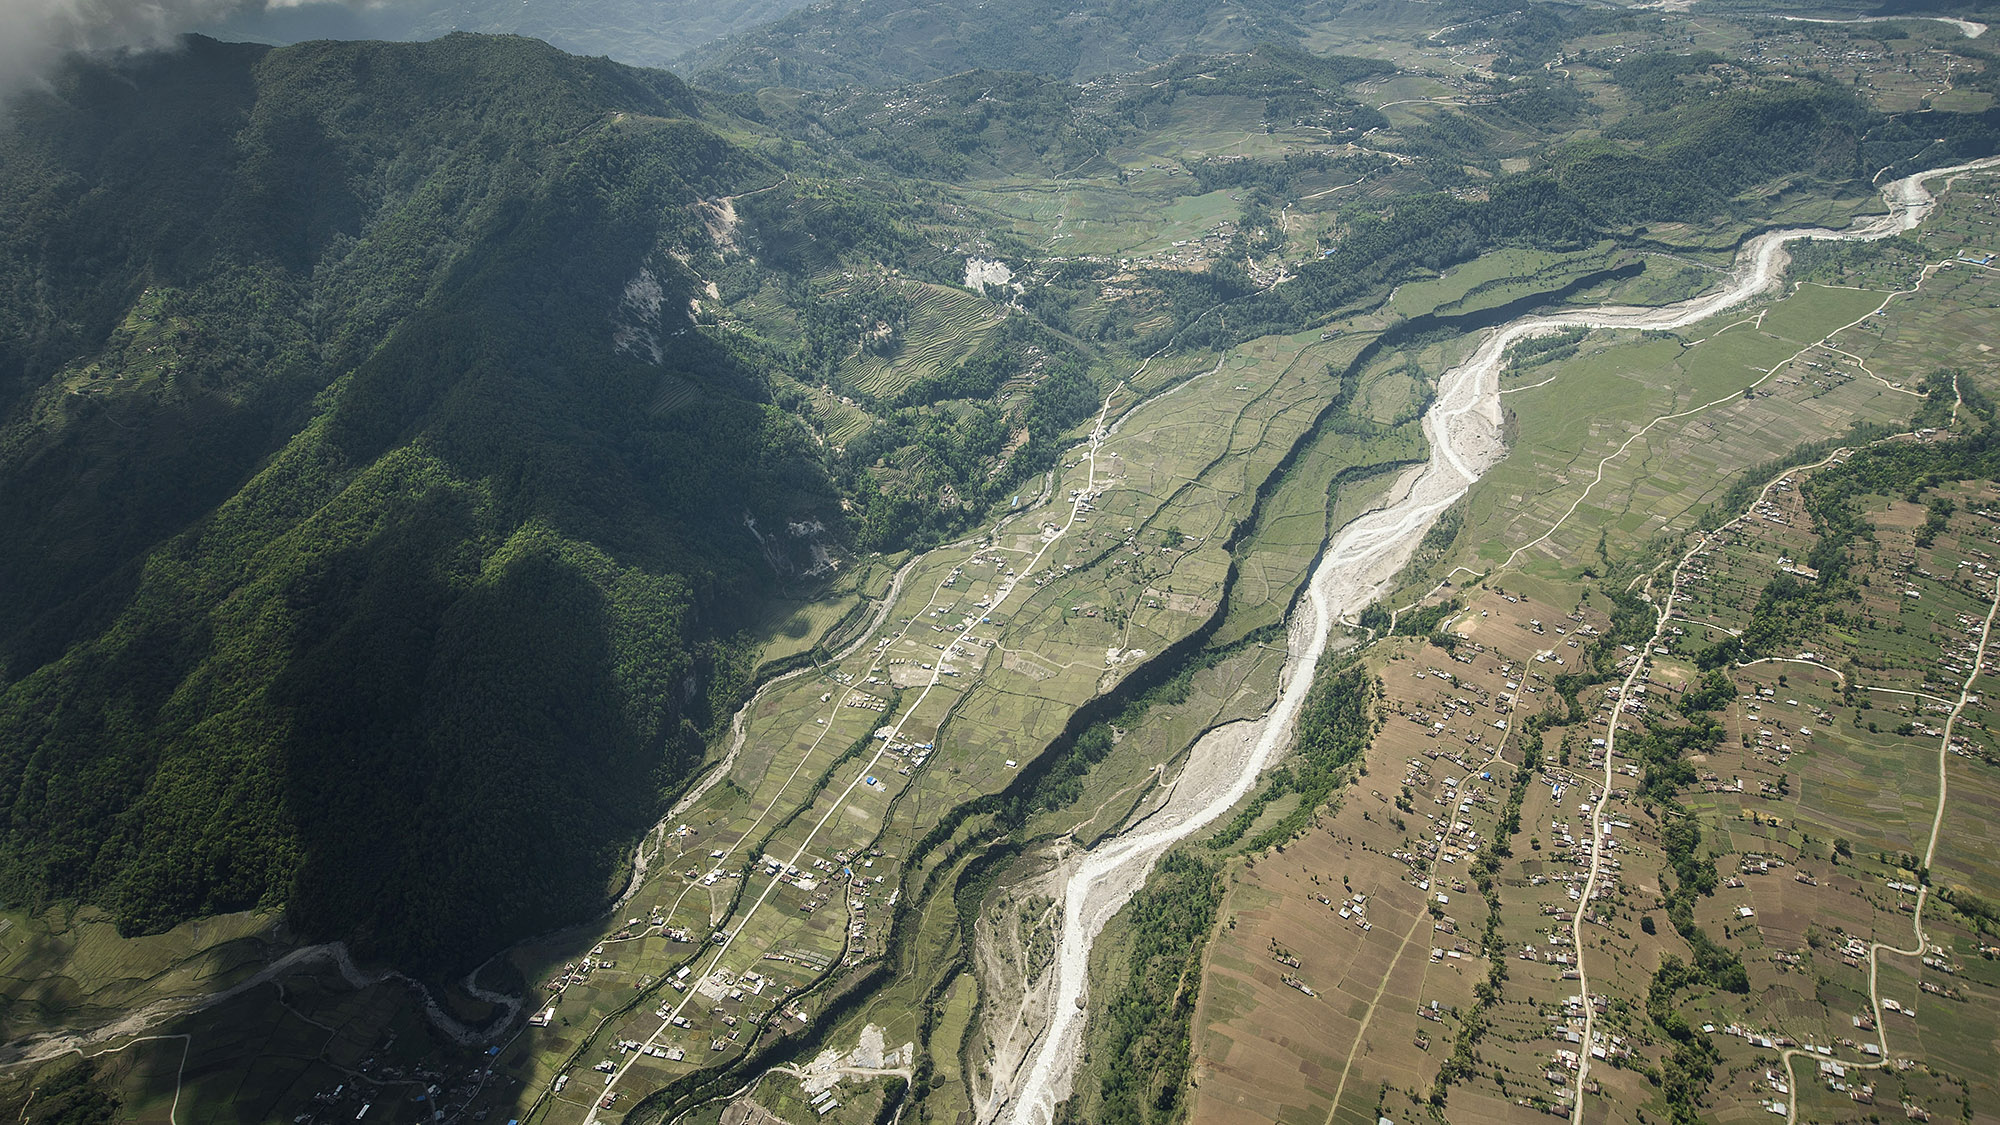 Agricultural settlements border the Seti Gandaki River which brings in fresh waters from the Annapurna region.